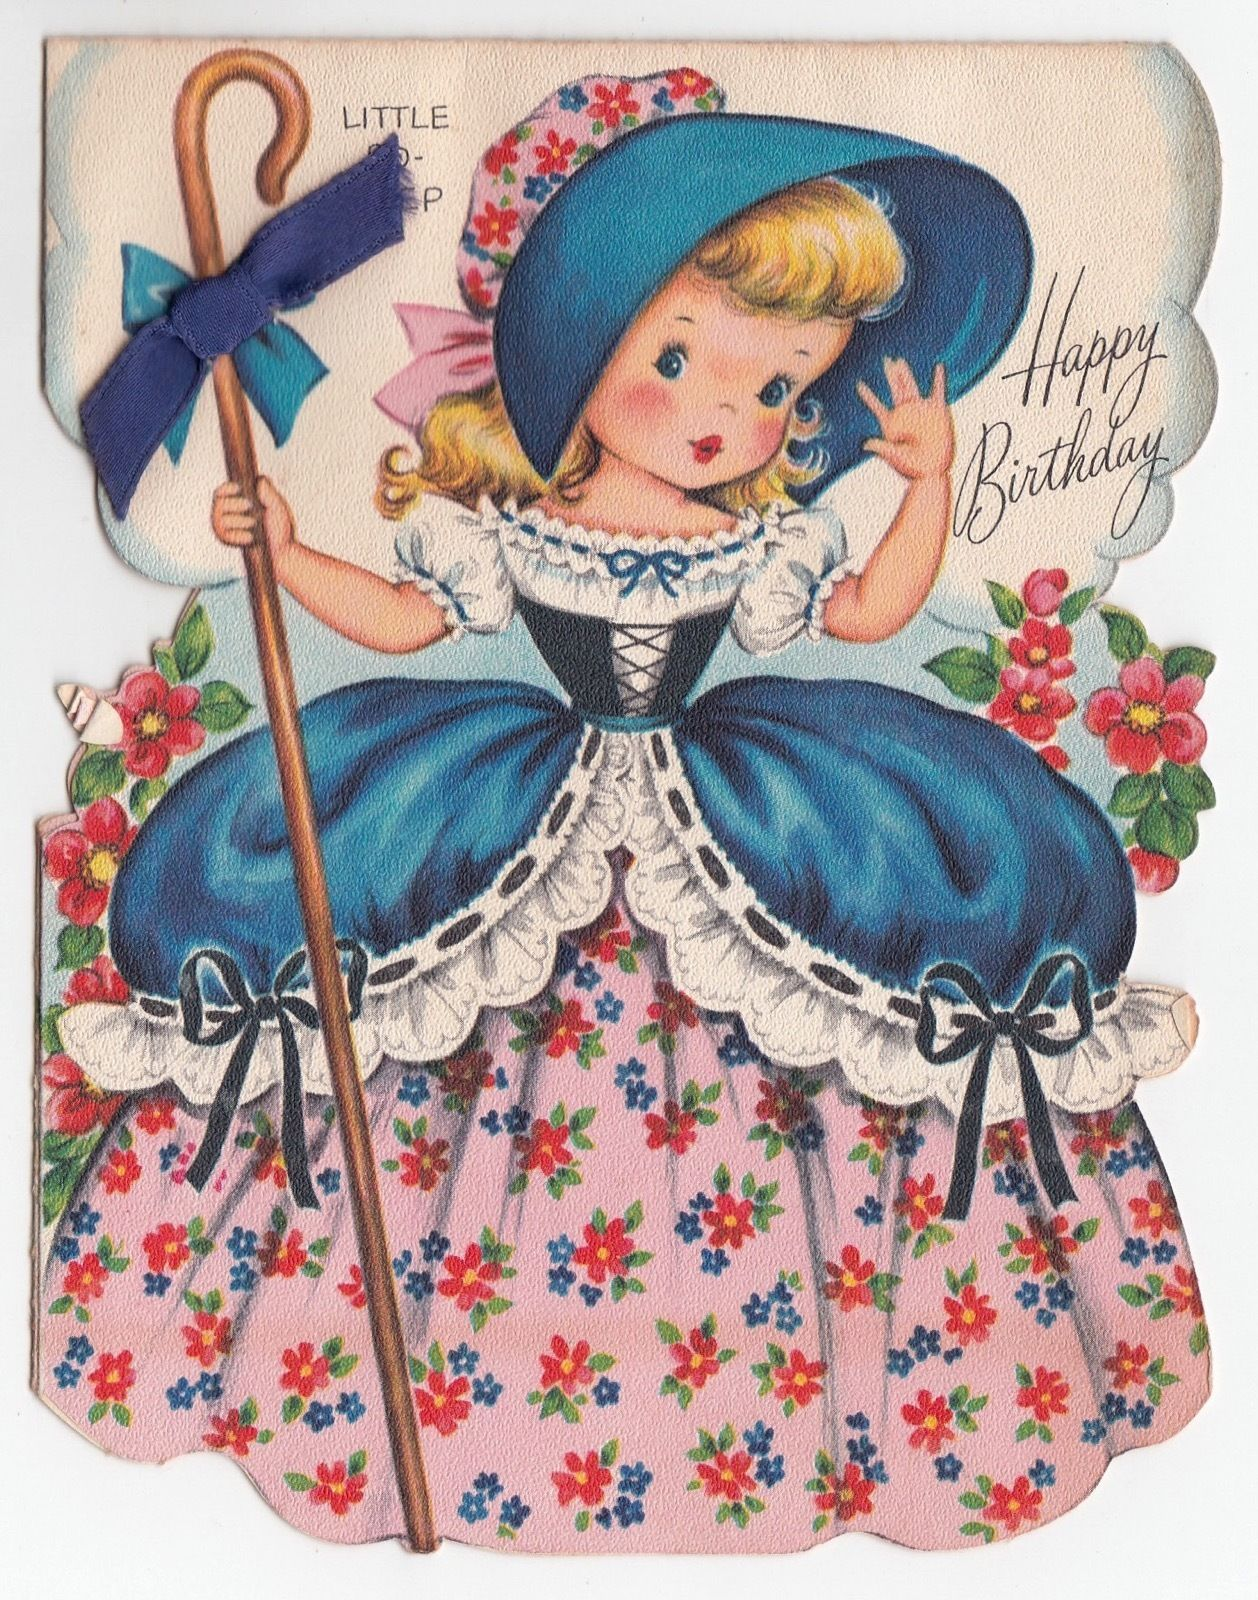 Vintage greeting card cute little girl die cut little bo peep vintage greeting card cute little girl die cut little bo peep fairfield ebay kristyandbryce Image collections